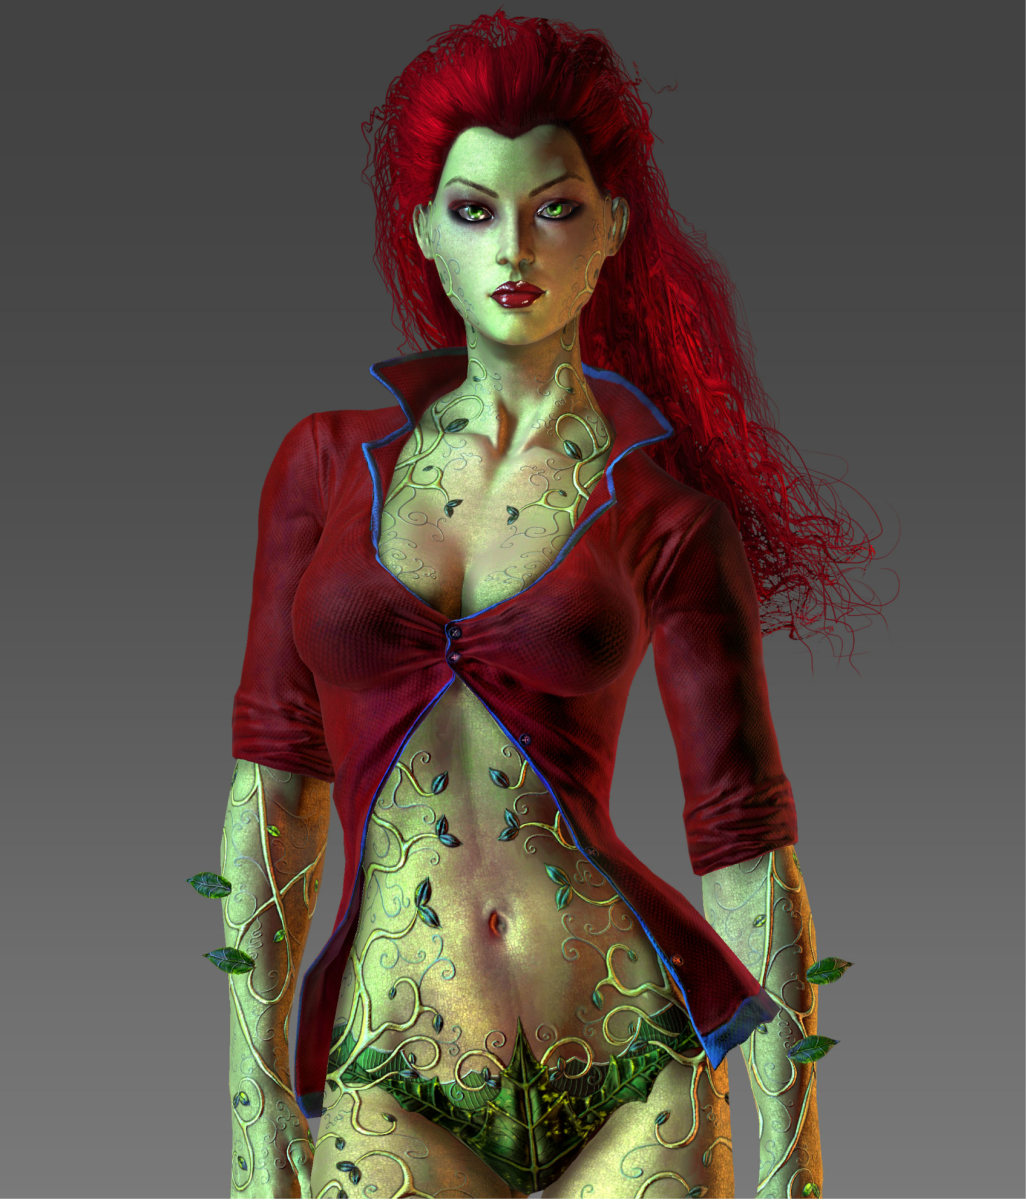 Poison Ivy as she appeared in Batman: Arkham Asylum.